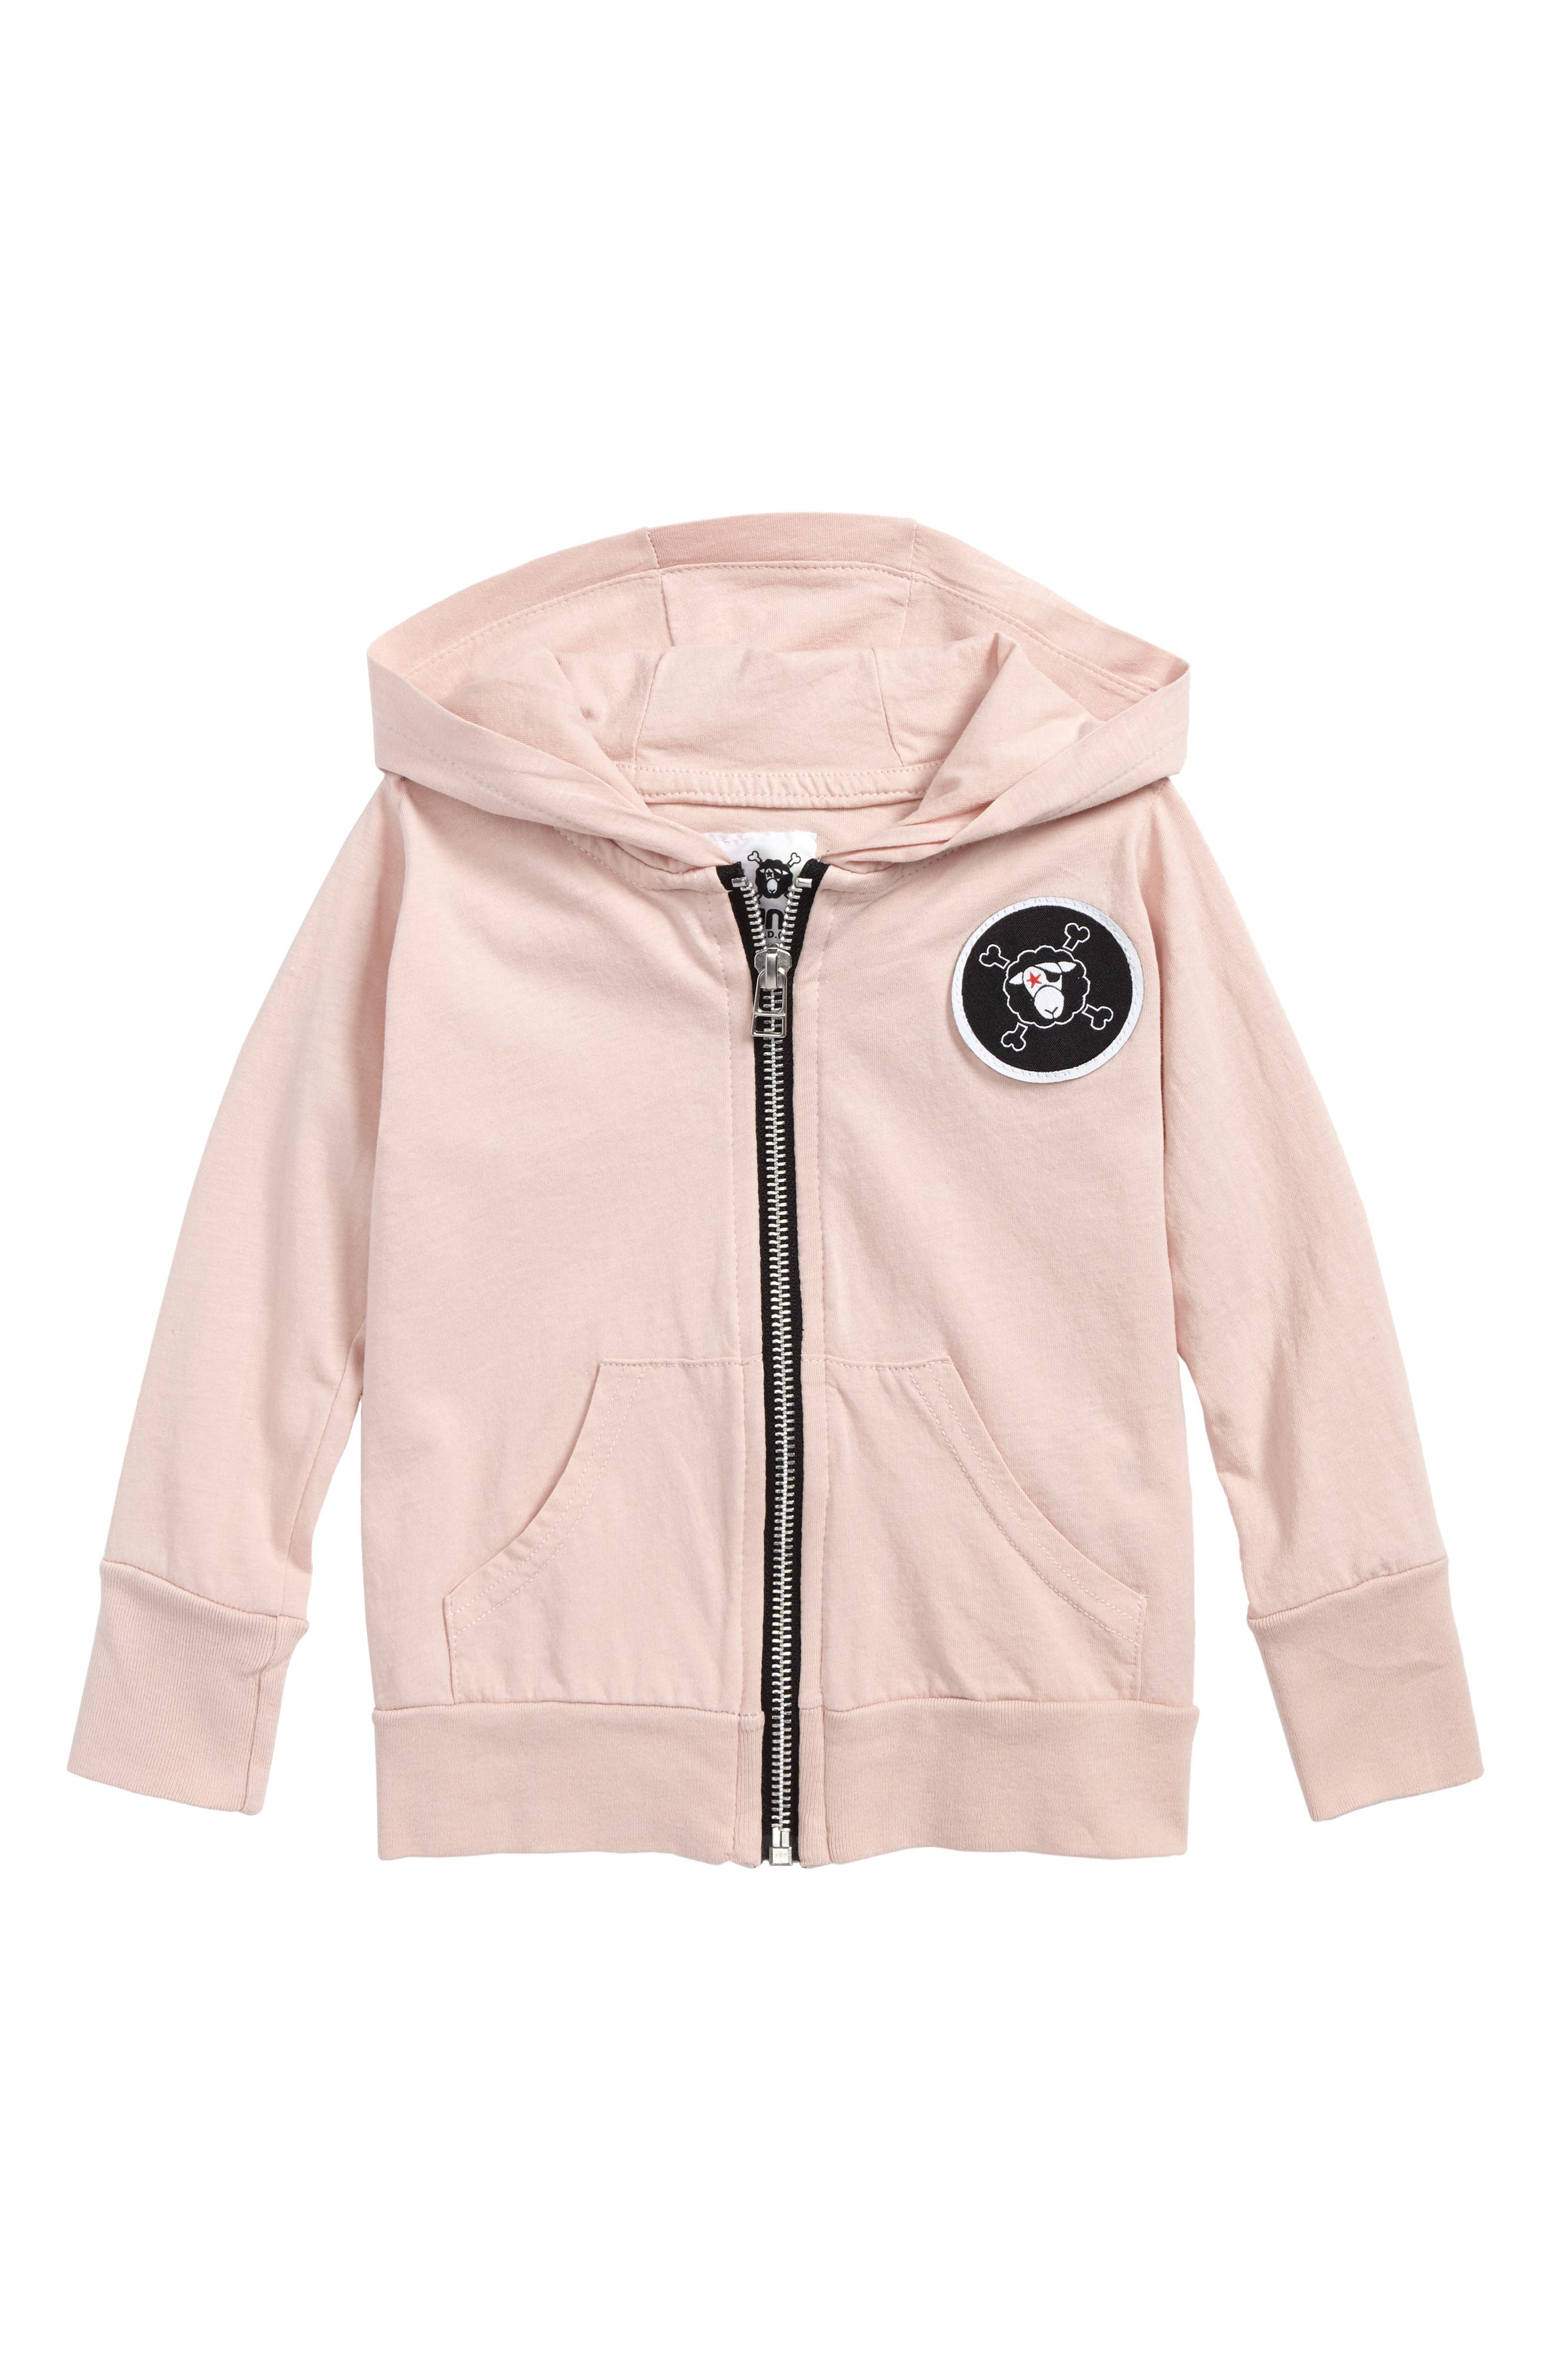 Patch Hoodie,                         Main,                         color, Powder Pink